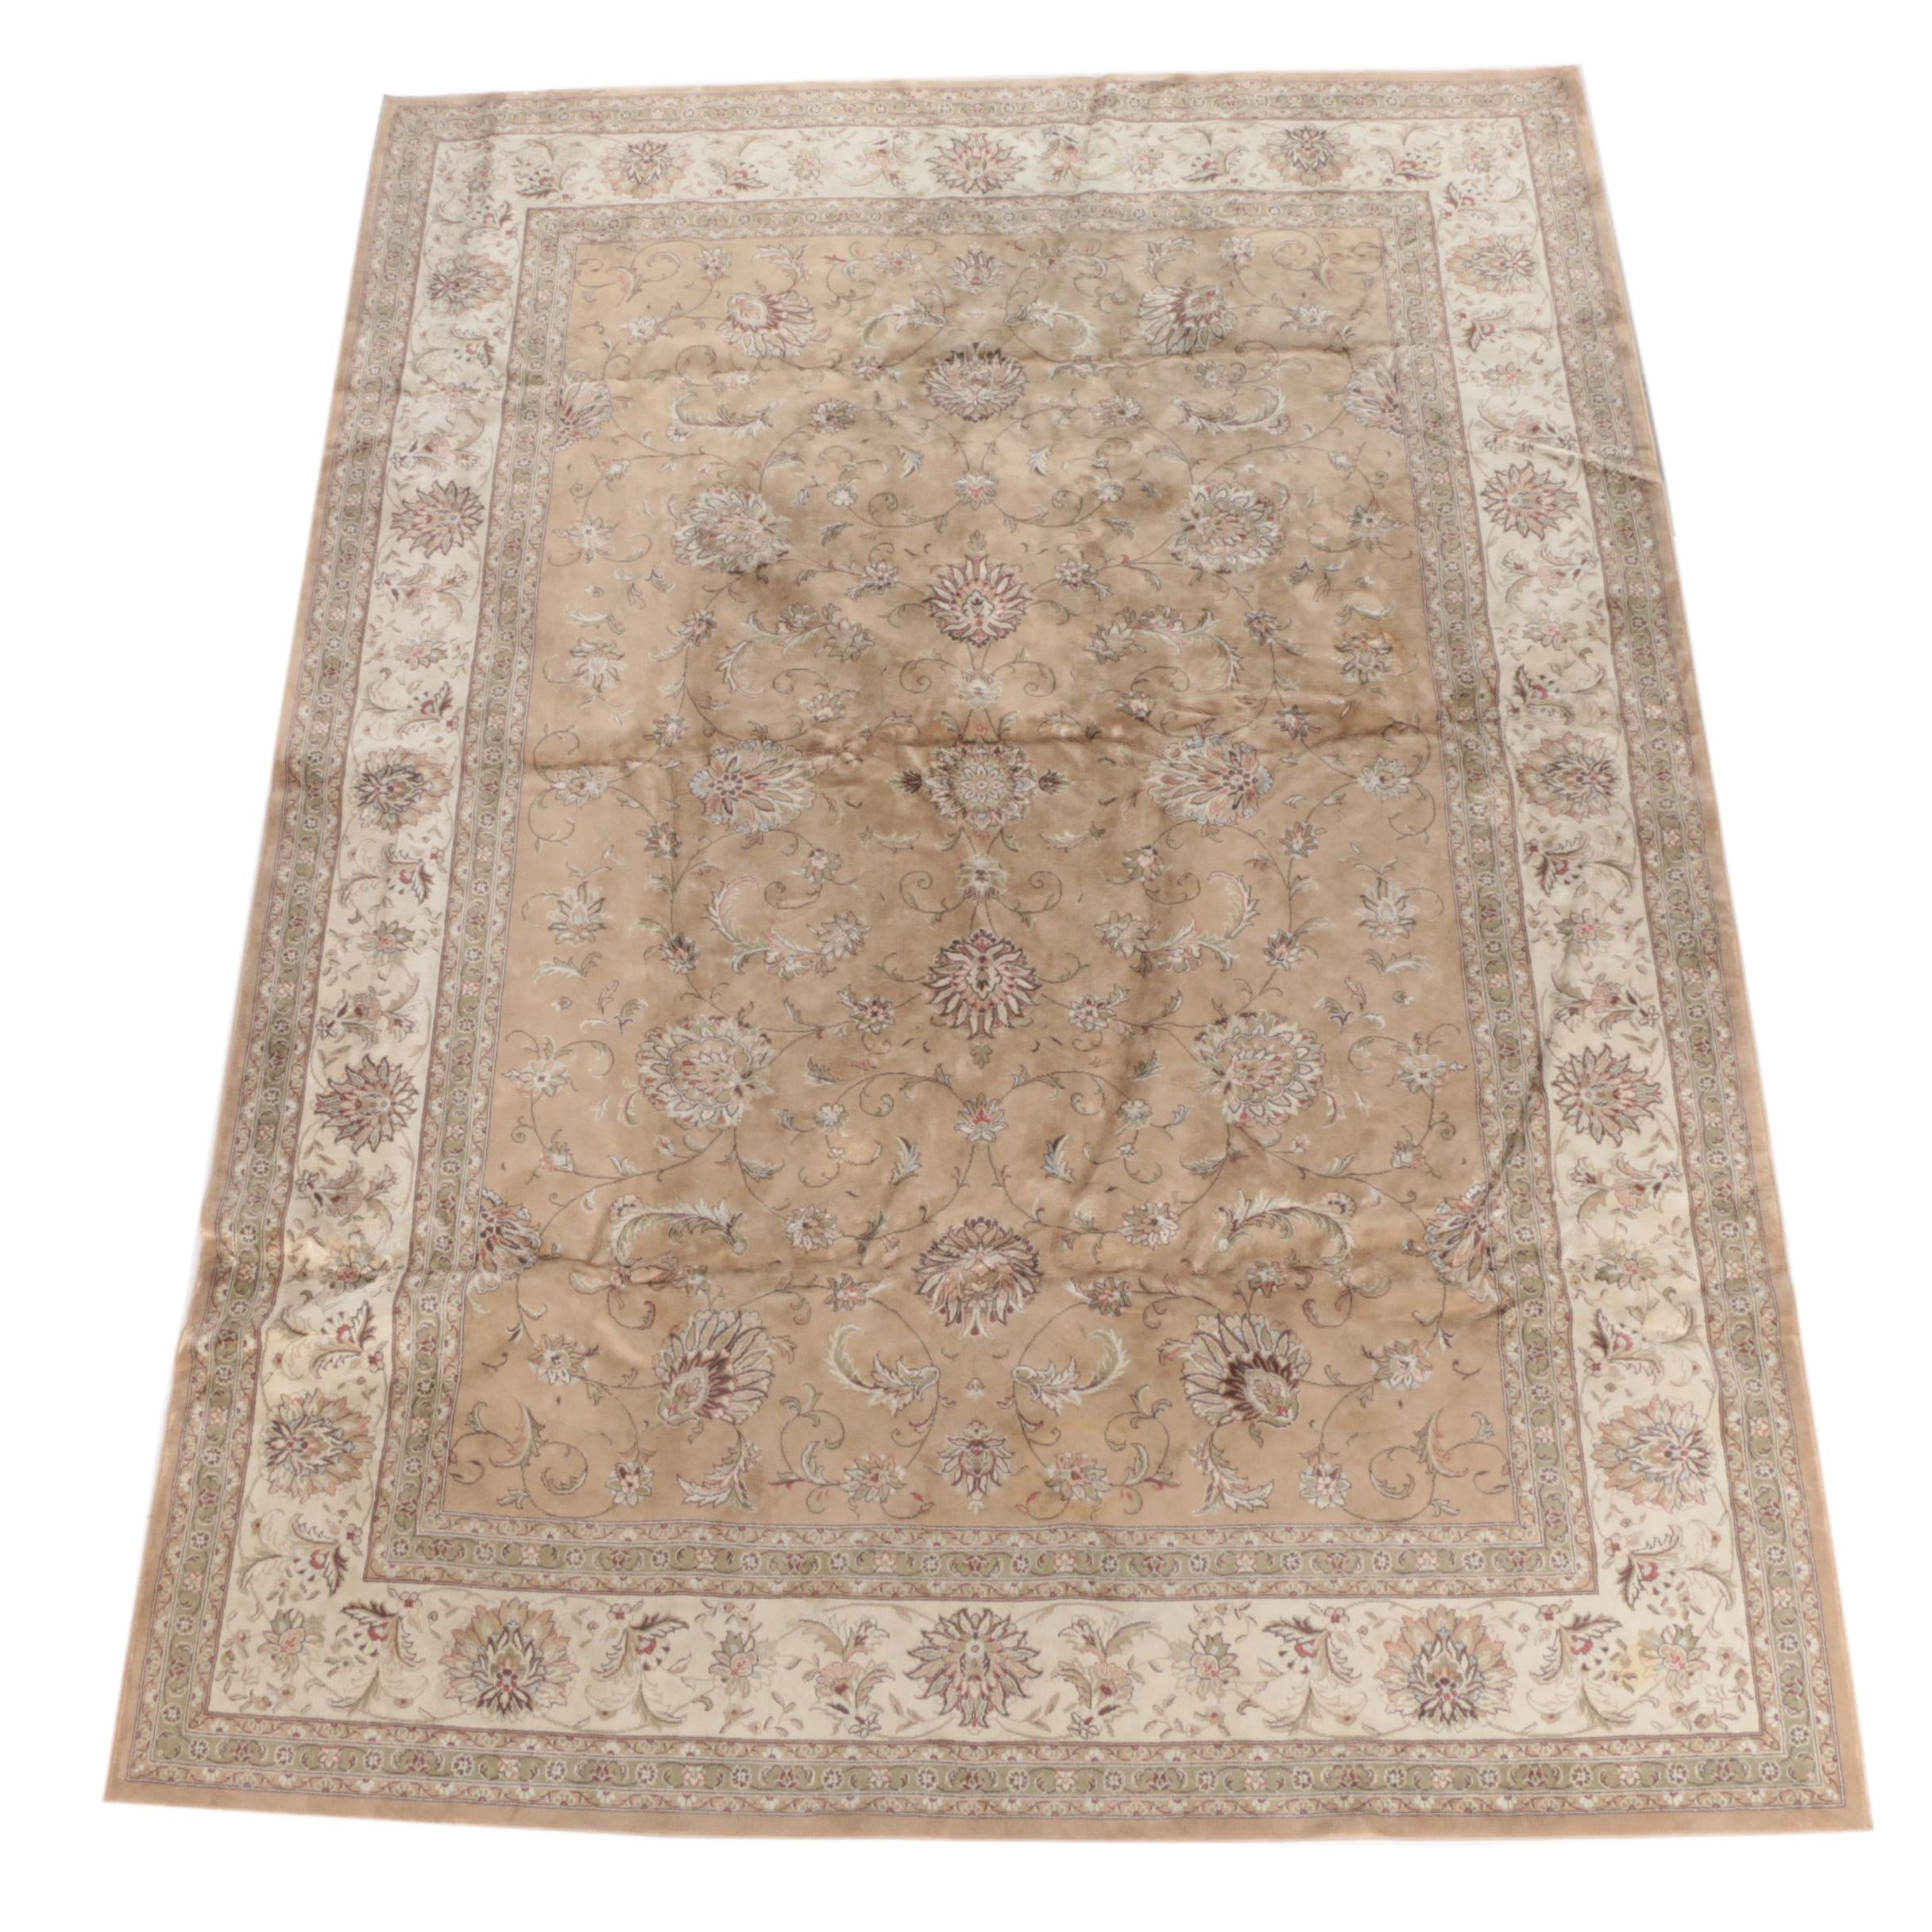 Machine Made Persian Style Rug by Milan